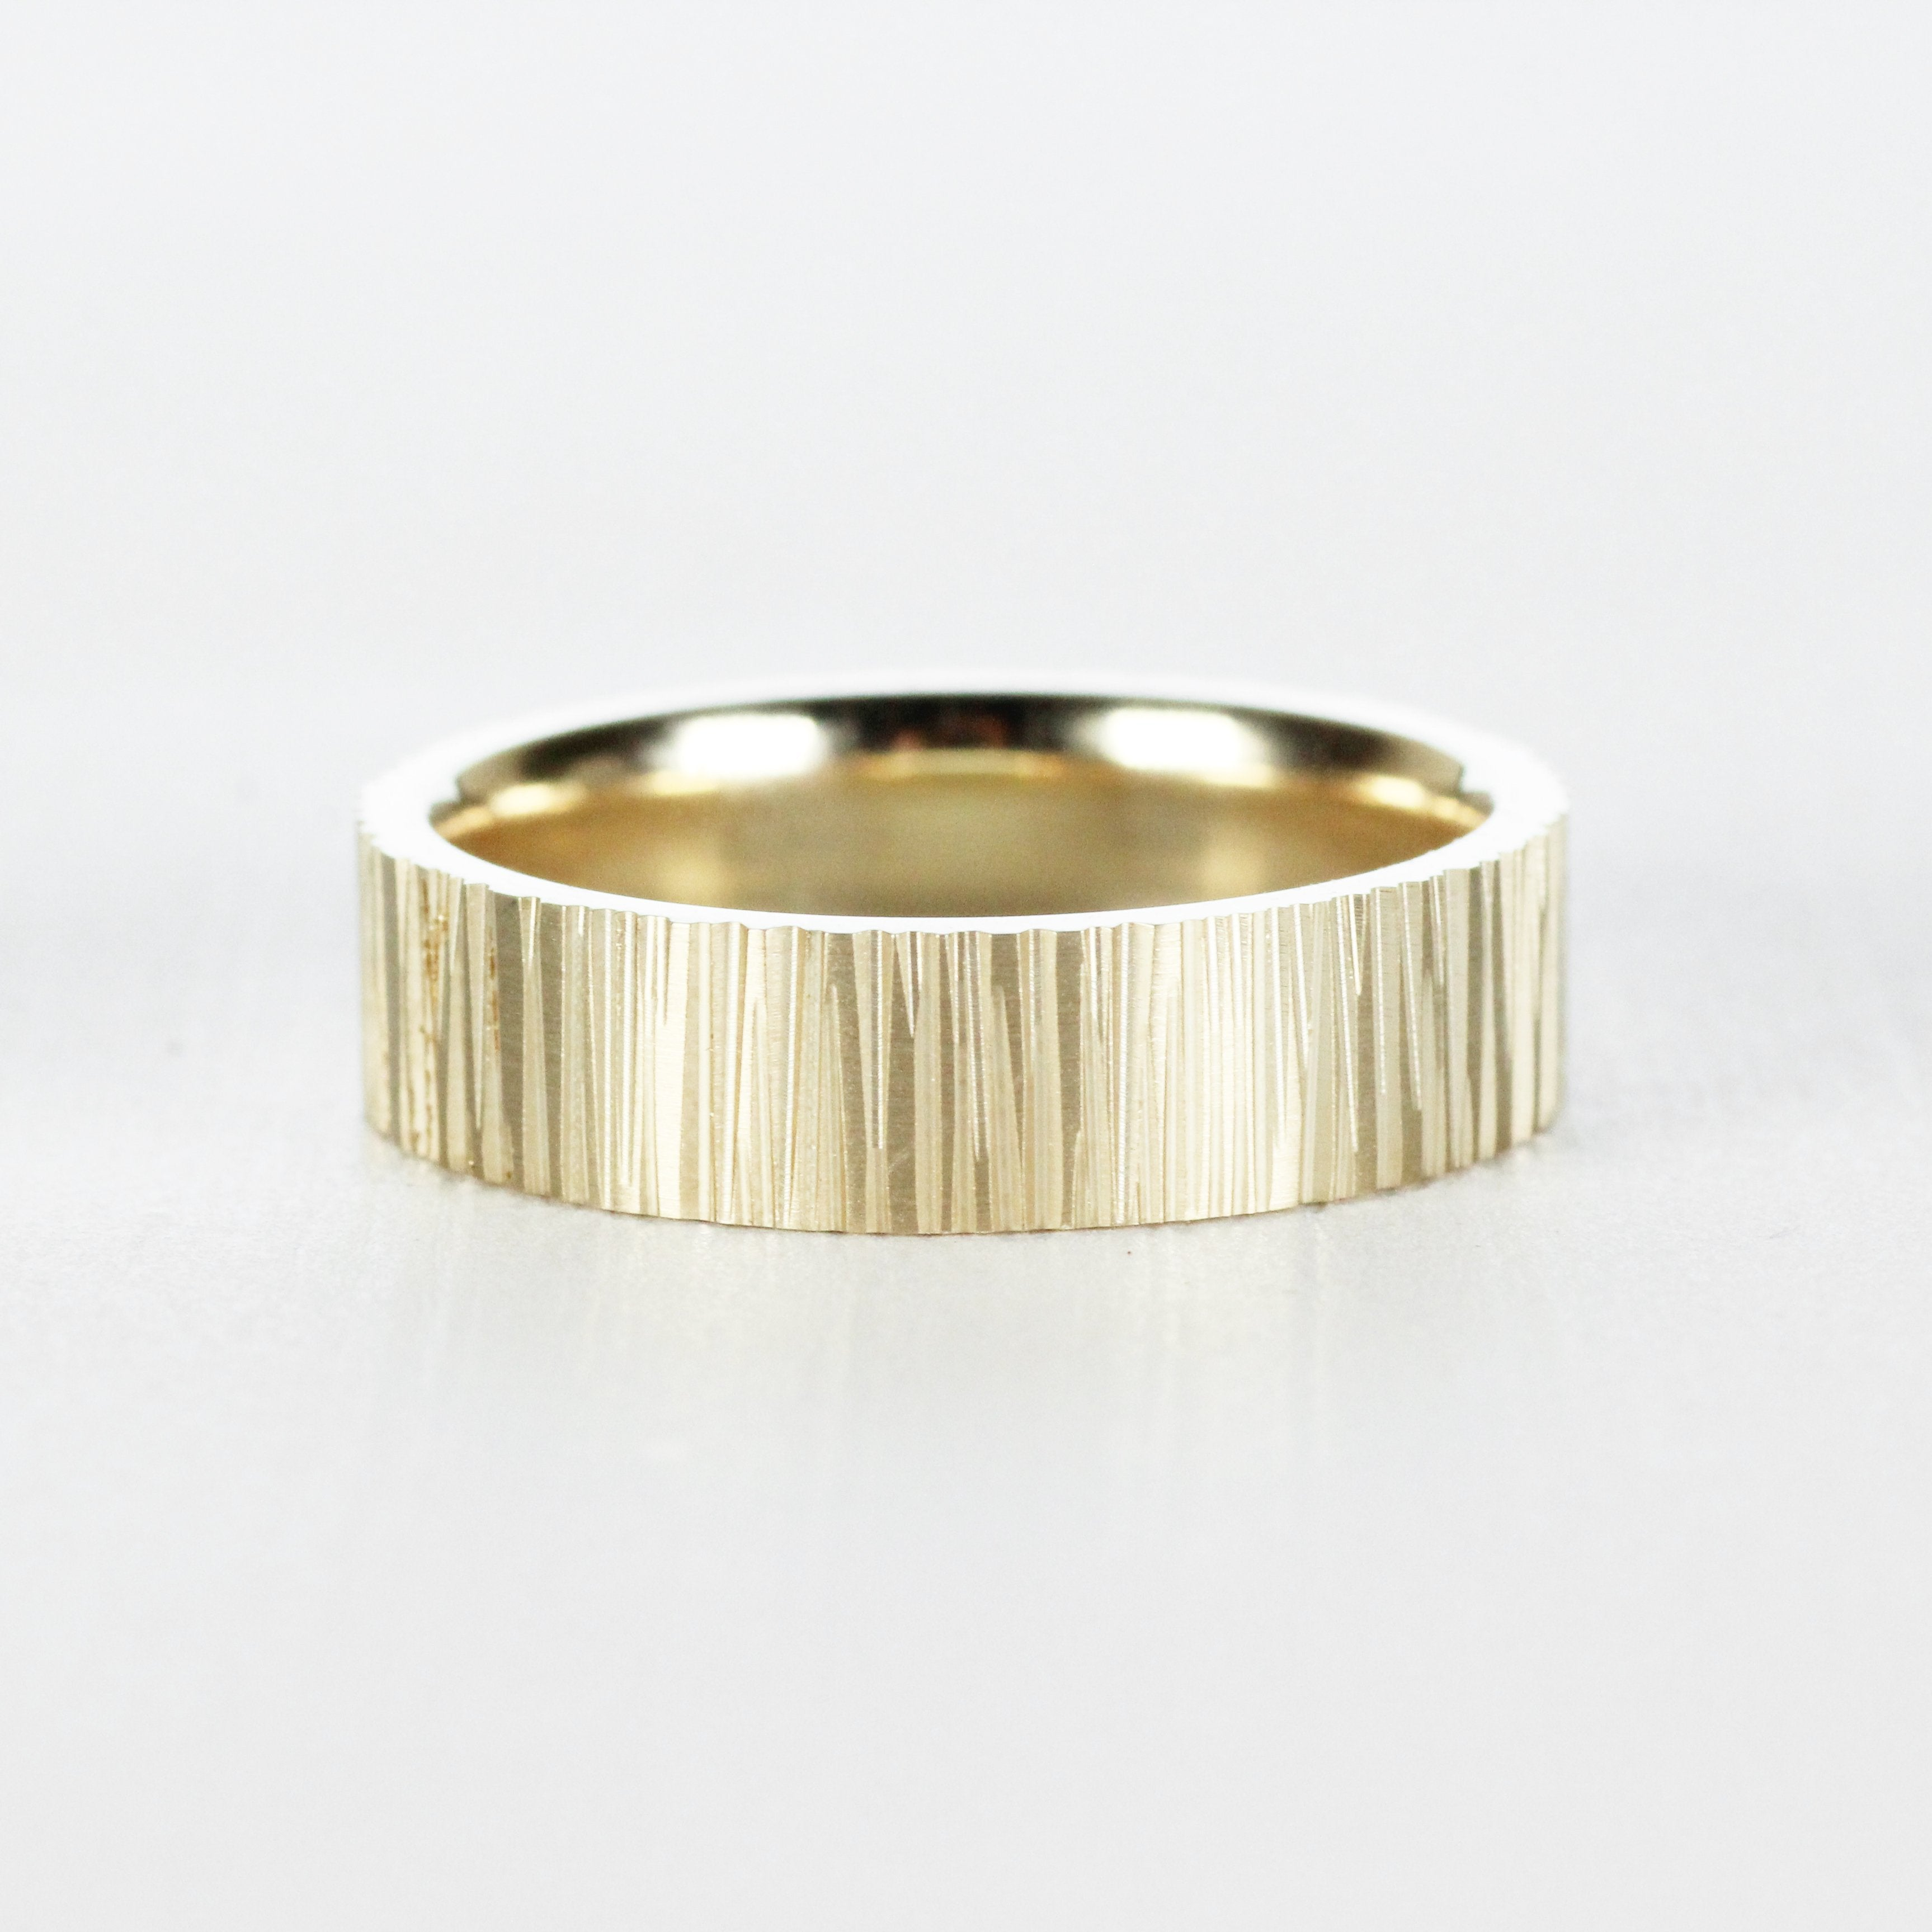 Tree Bark Texture Wedding Band Ring - 4mm 5mm 6mm - Unisex